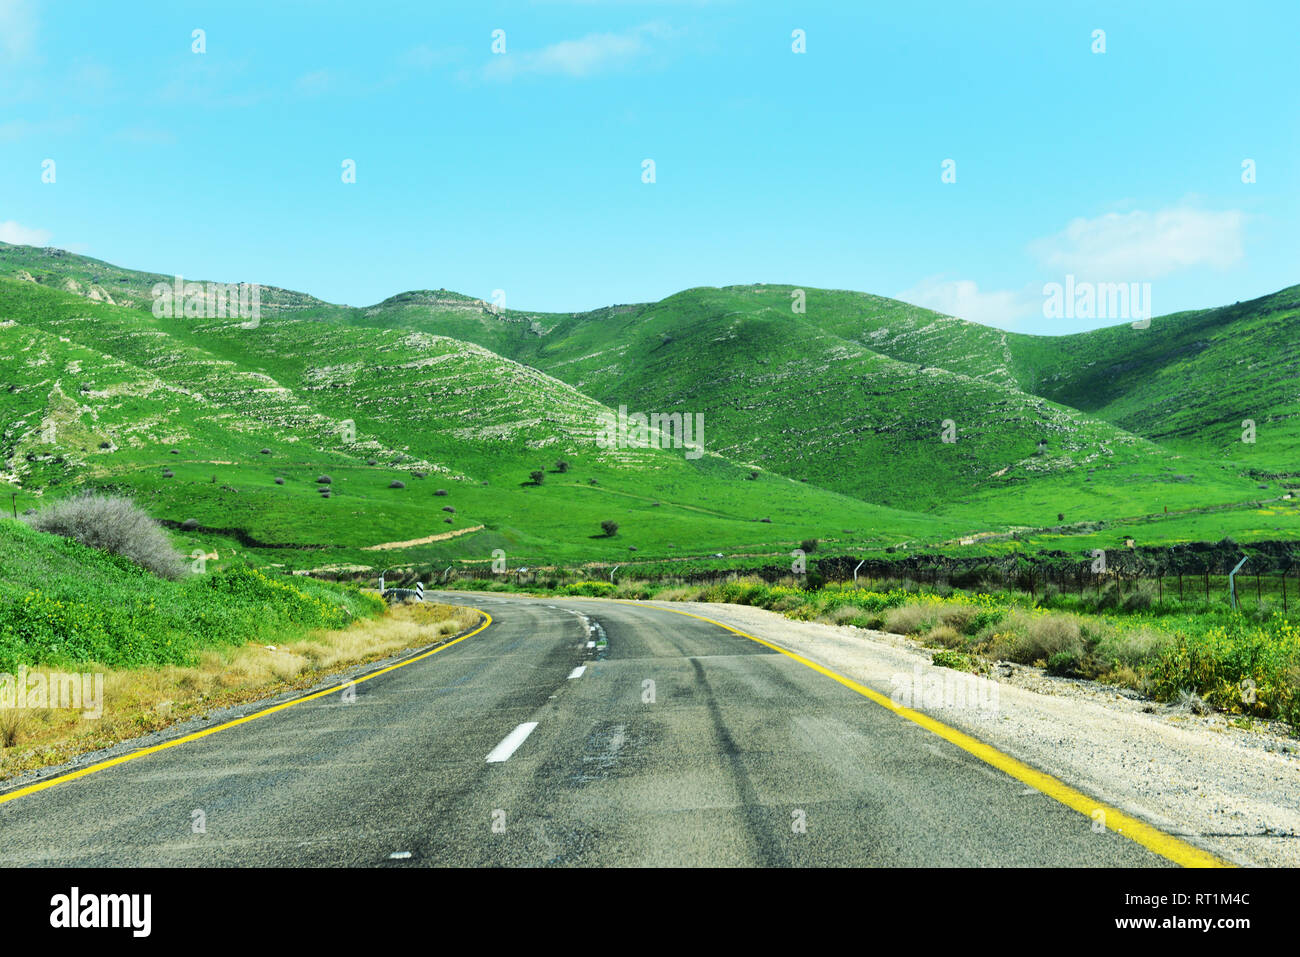 Driving through the beautiful landscapes of the Golan Heights. - Stock Image